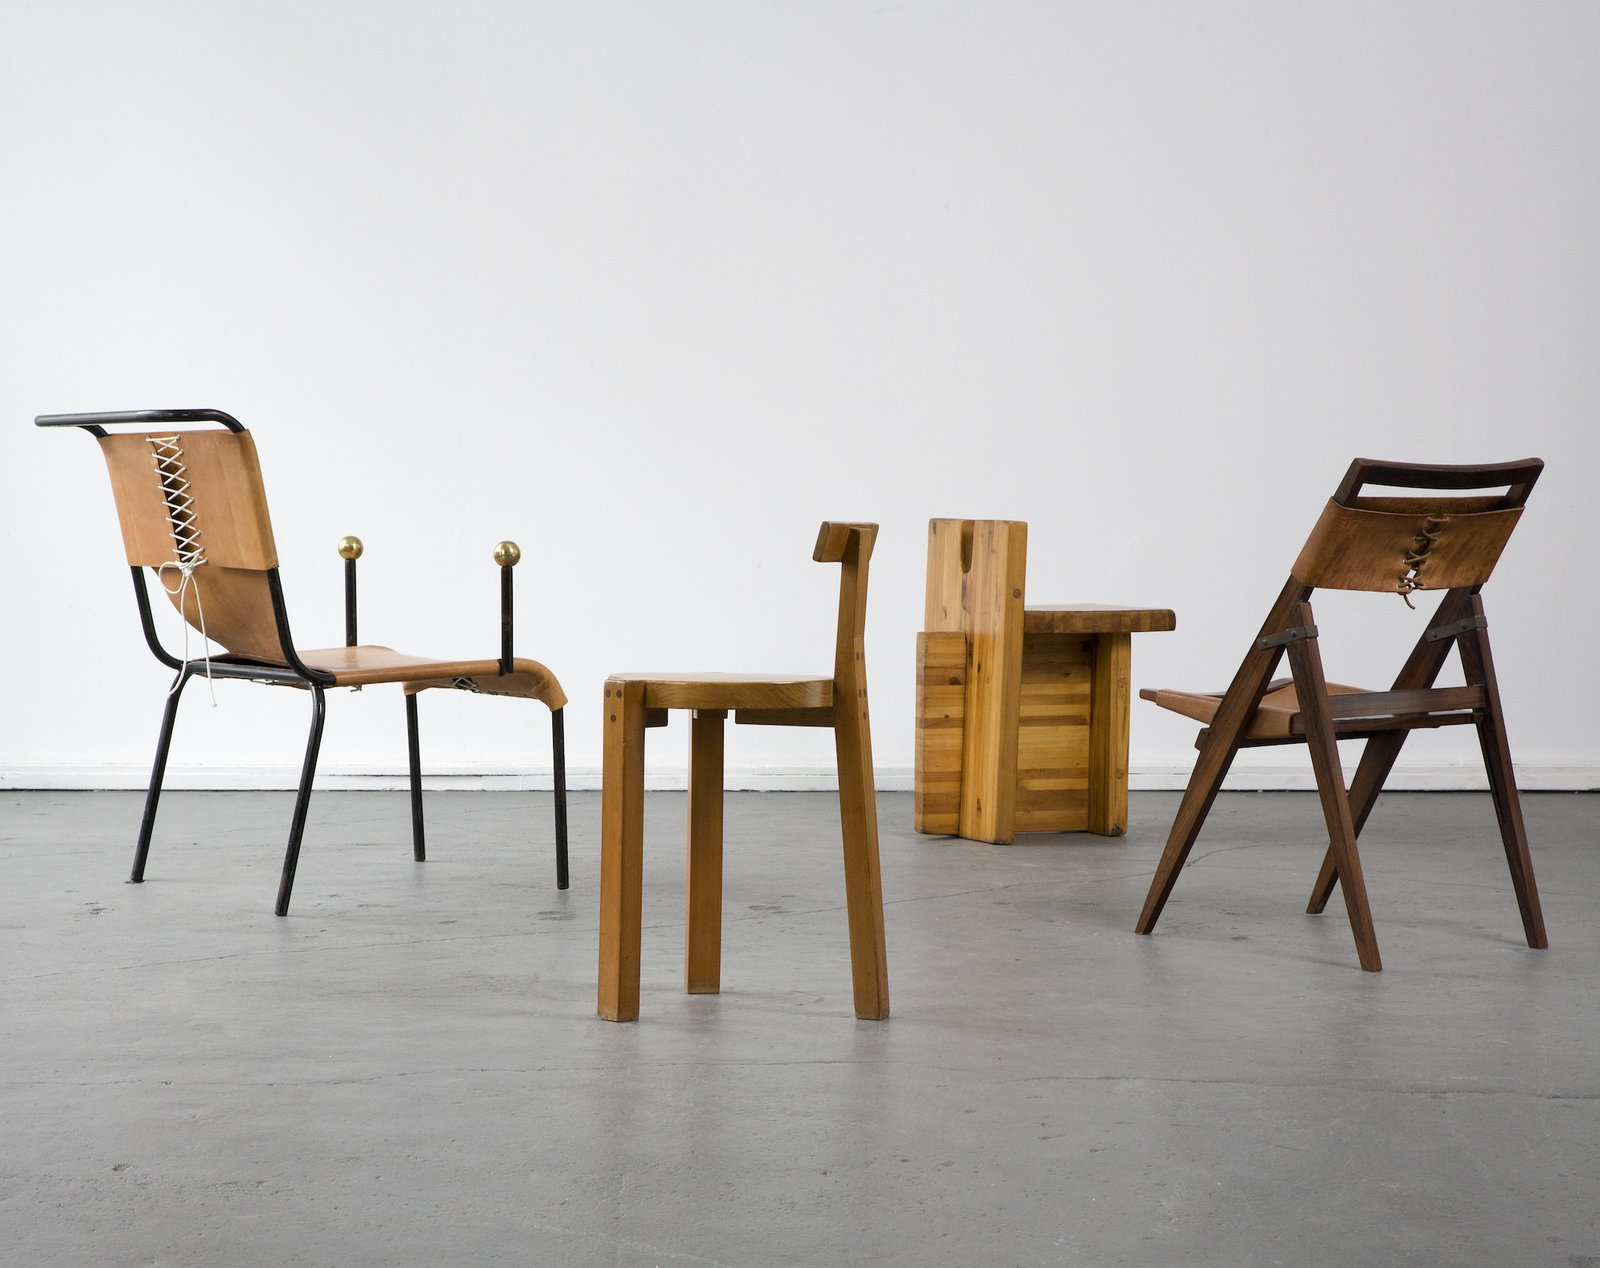 Architect Lina Bo Bardi embraced the vernacular design traditions while pushing new forms forward. Her use of not only wood but fabrics and leathers stand out in several of her designs. Her furniture was often designed only for her buildings. This group of chairs was created between the 1950s and the 1980s.  100+ Best Modern Seating Designs by Dwell from Bring the Best of Brazilian Modernism to Your Home with This New Book